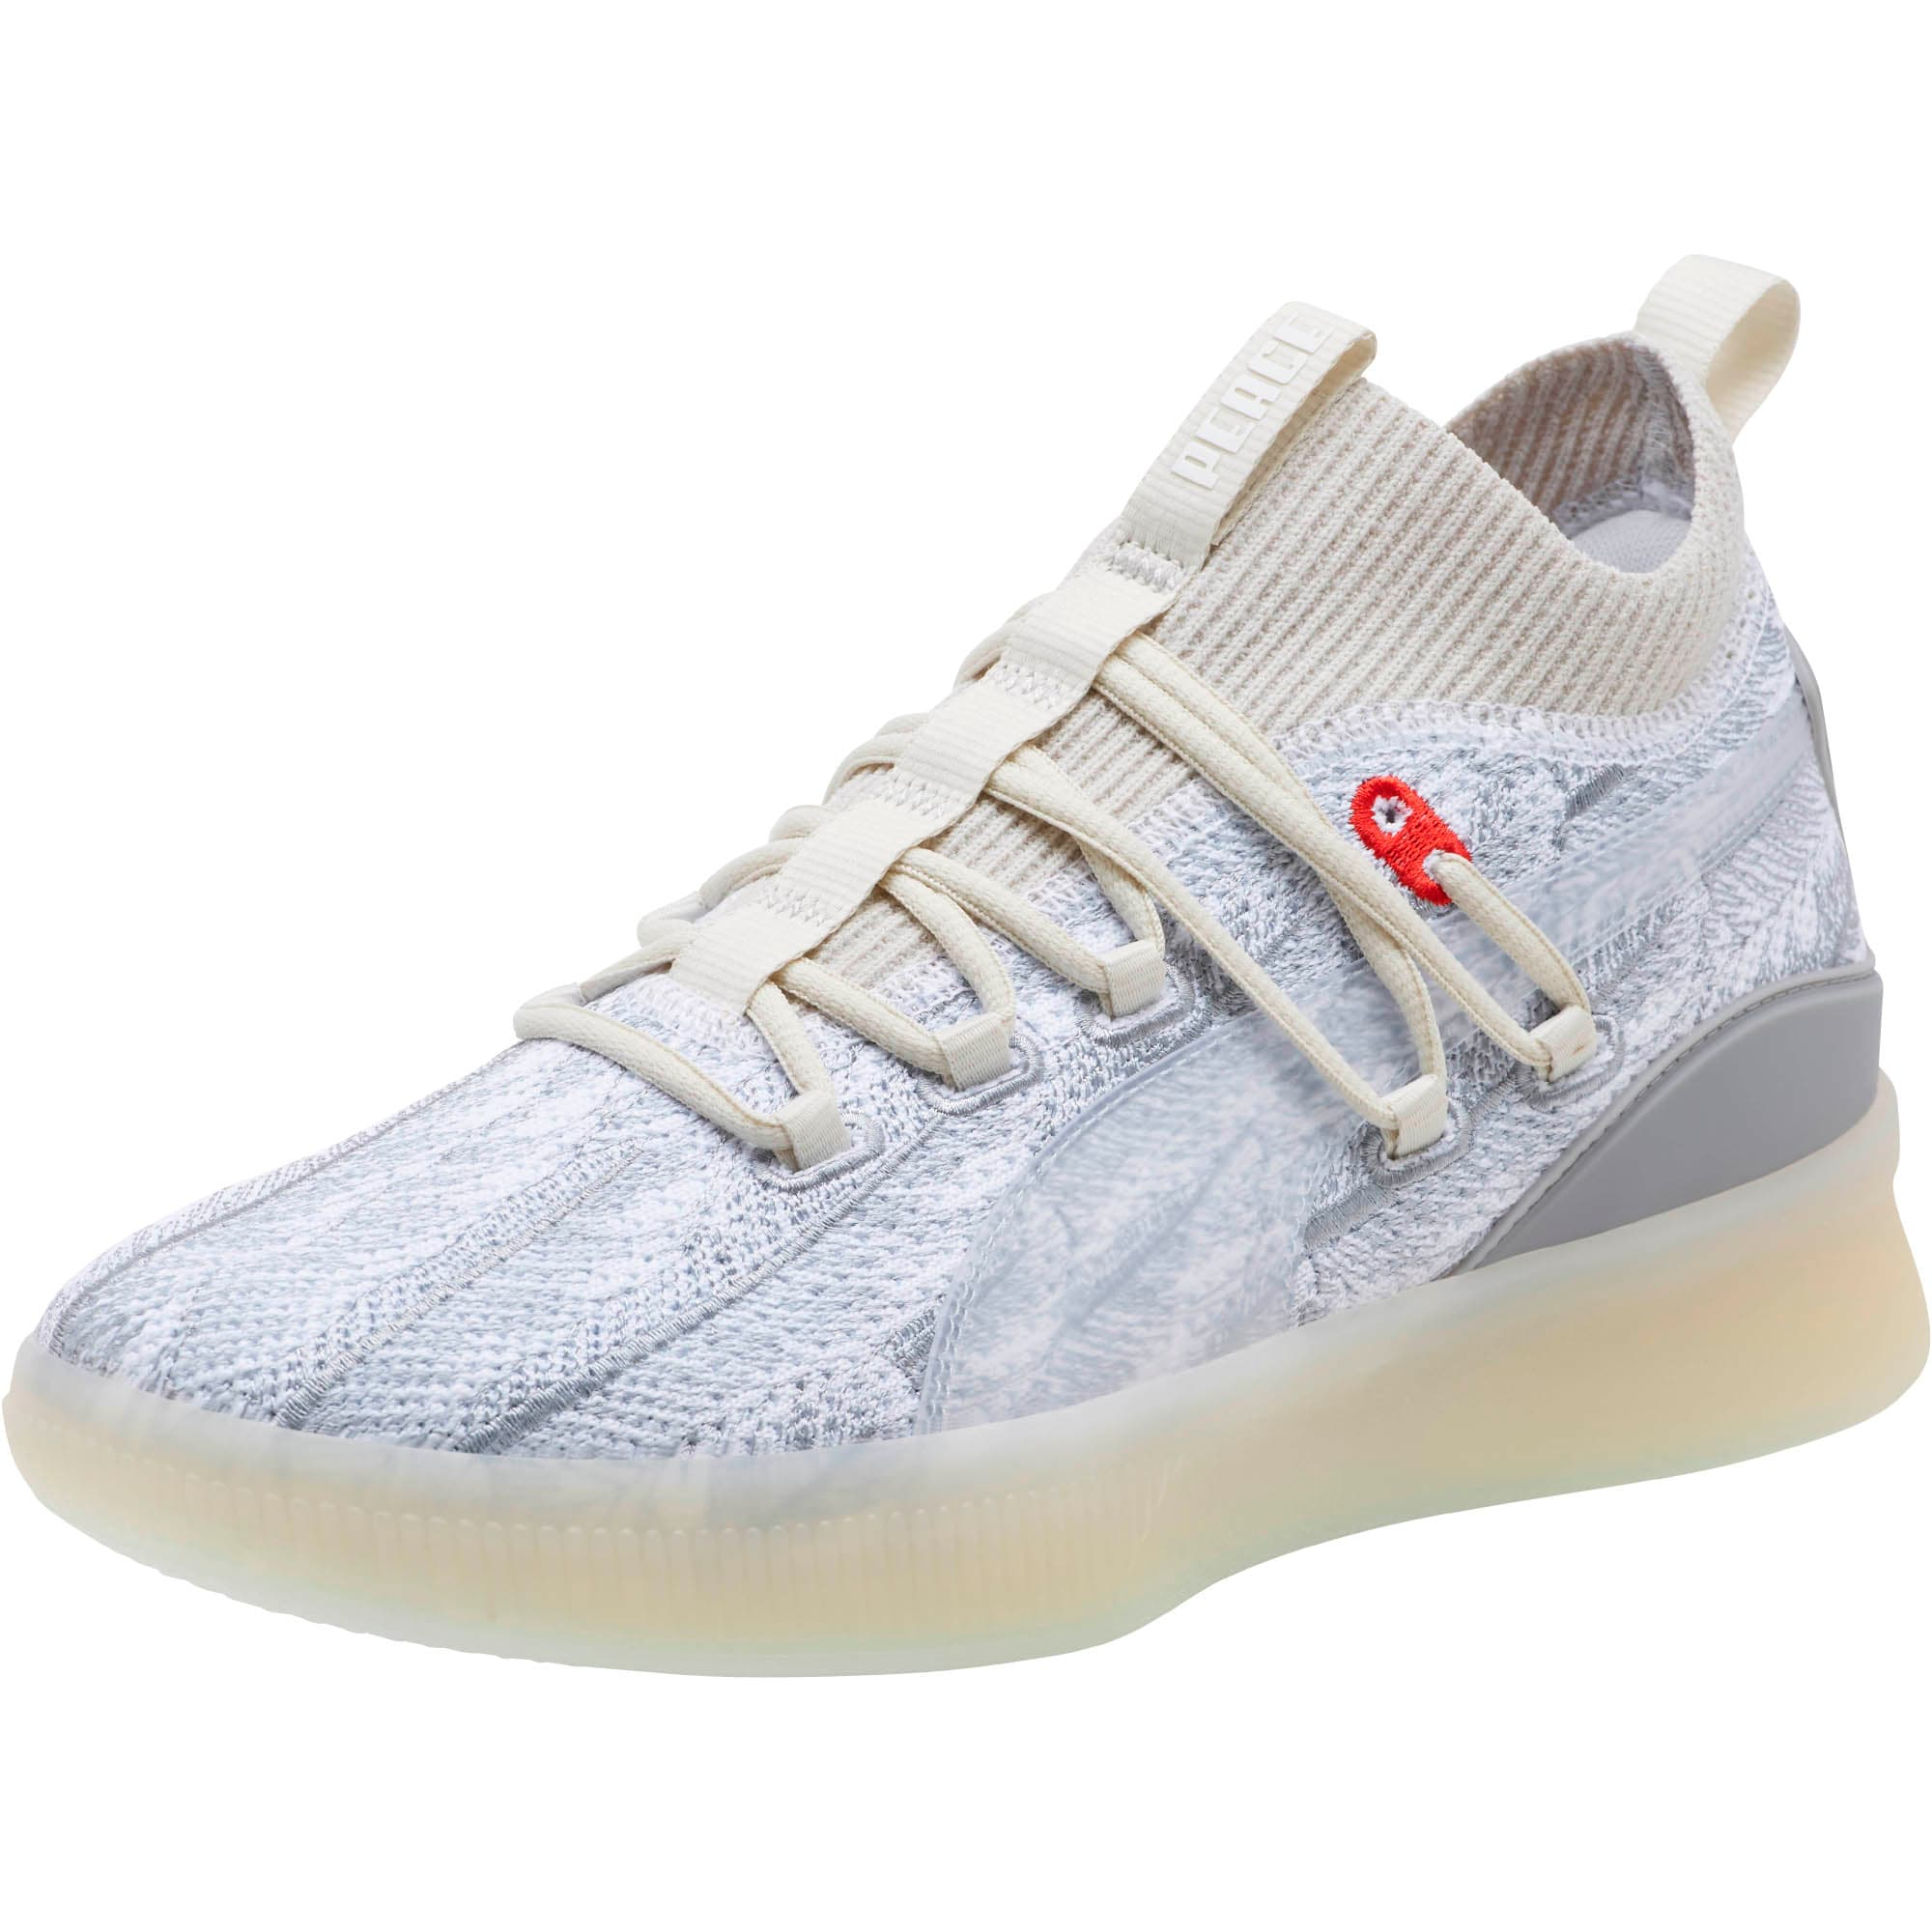 Clyde Court Peace on Earth Men's Basketball Shoes   PUMA US